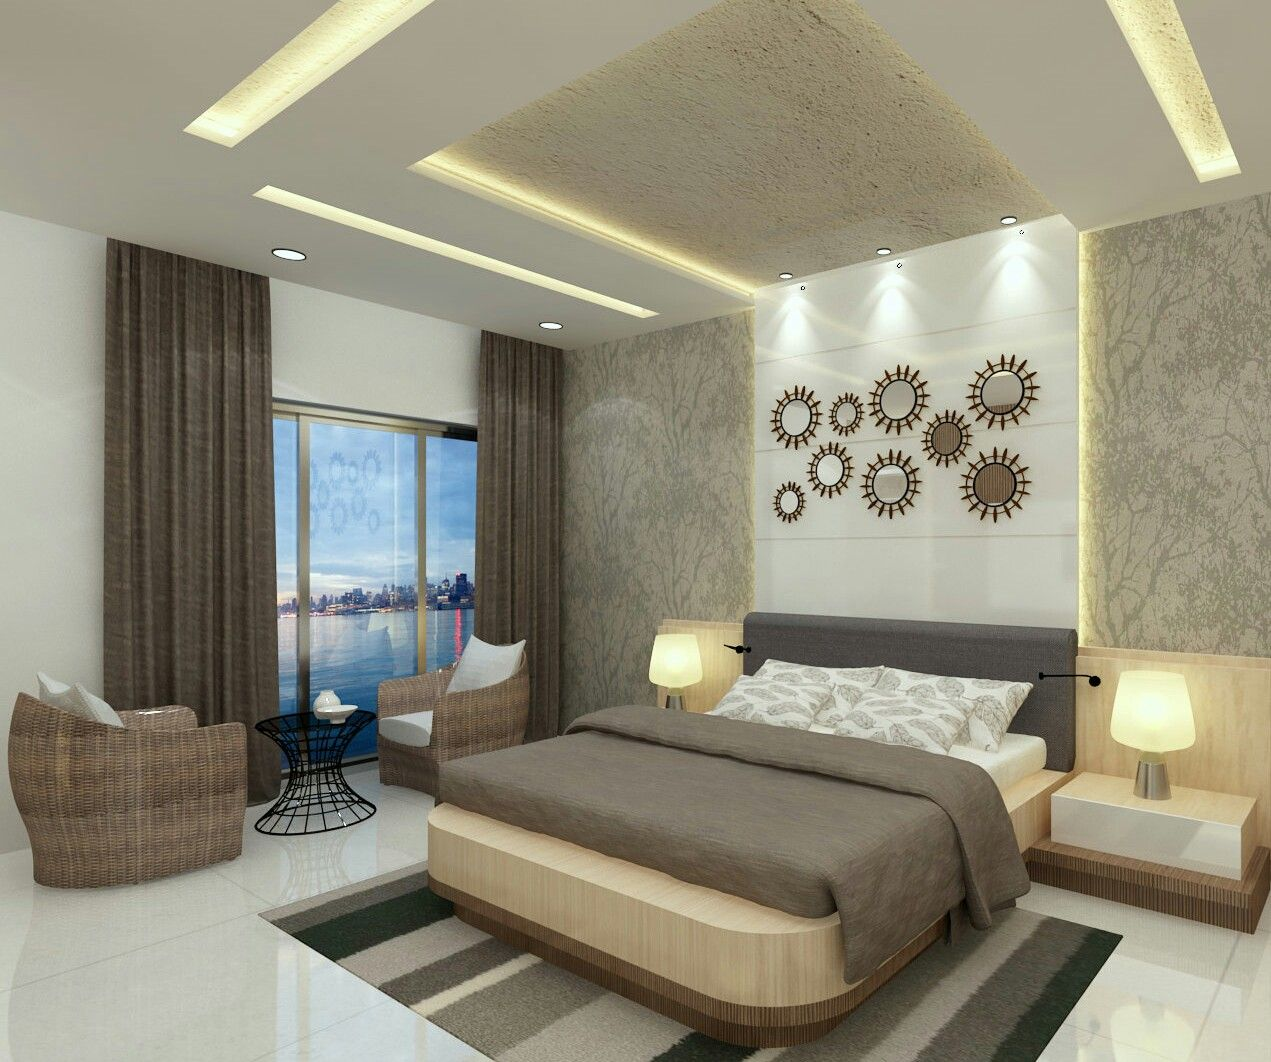 Best Bedroom Decor Always Needs A Luxurious Suspension Lamp 640 x 480